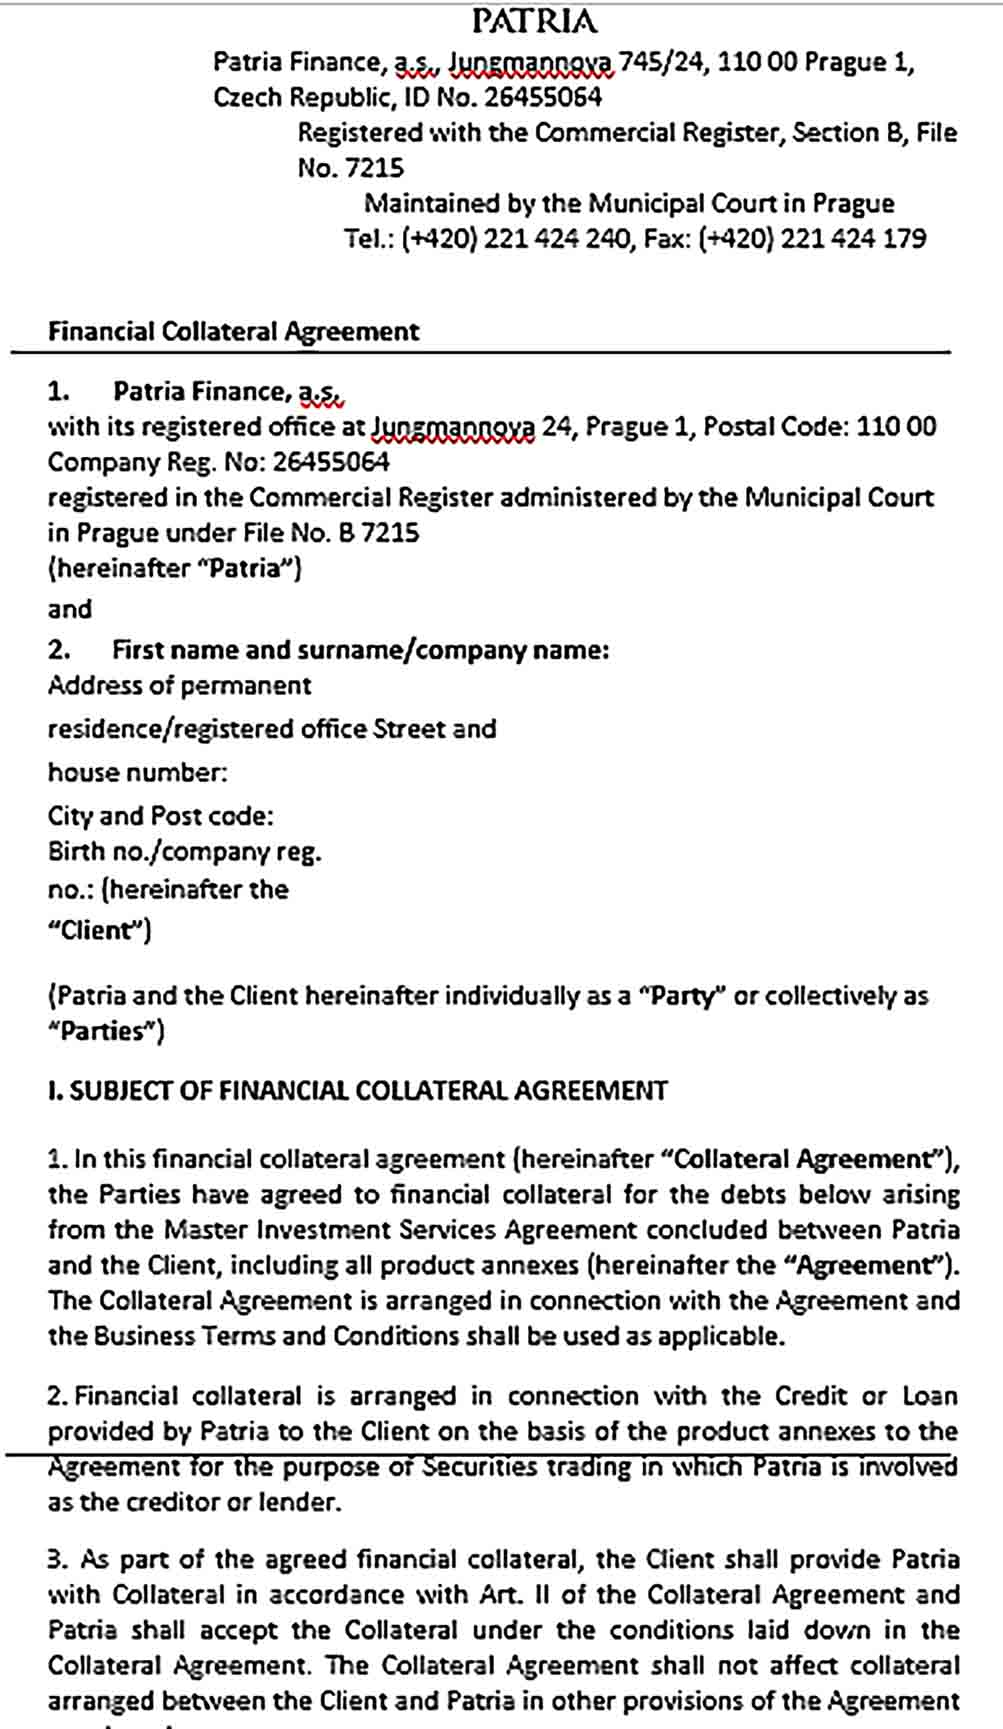 Sample Financial Collateral Agreement